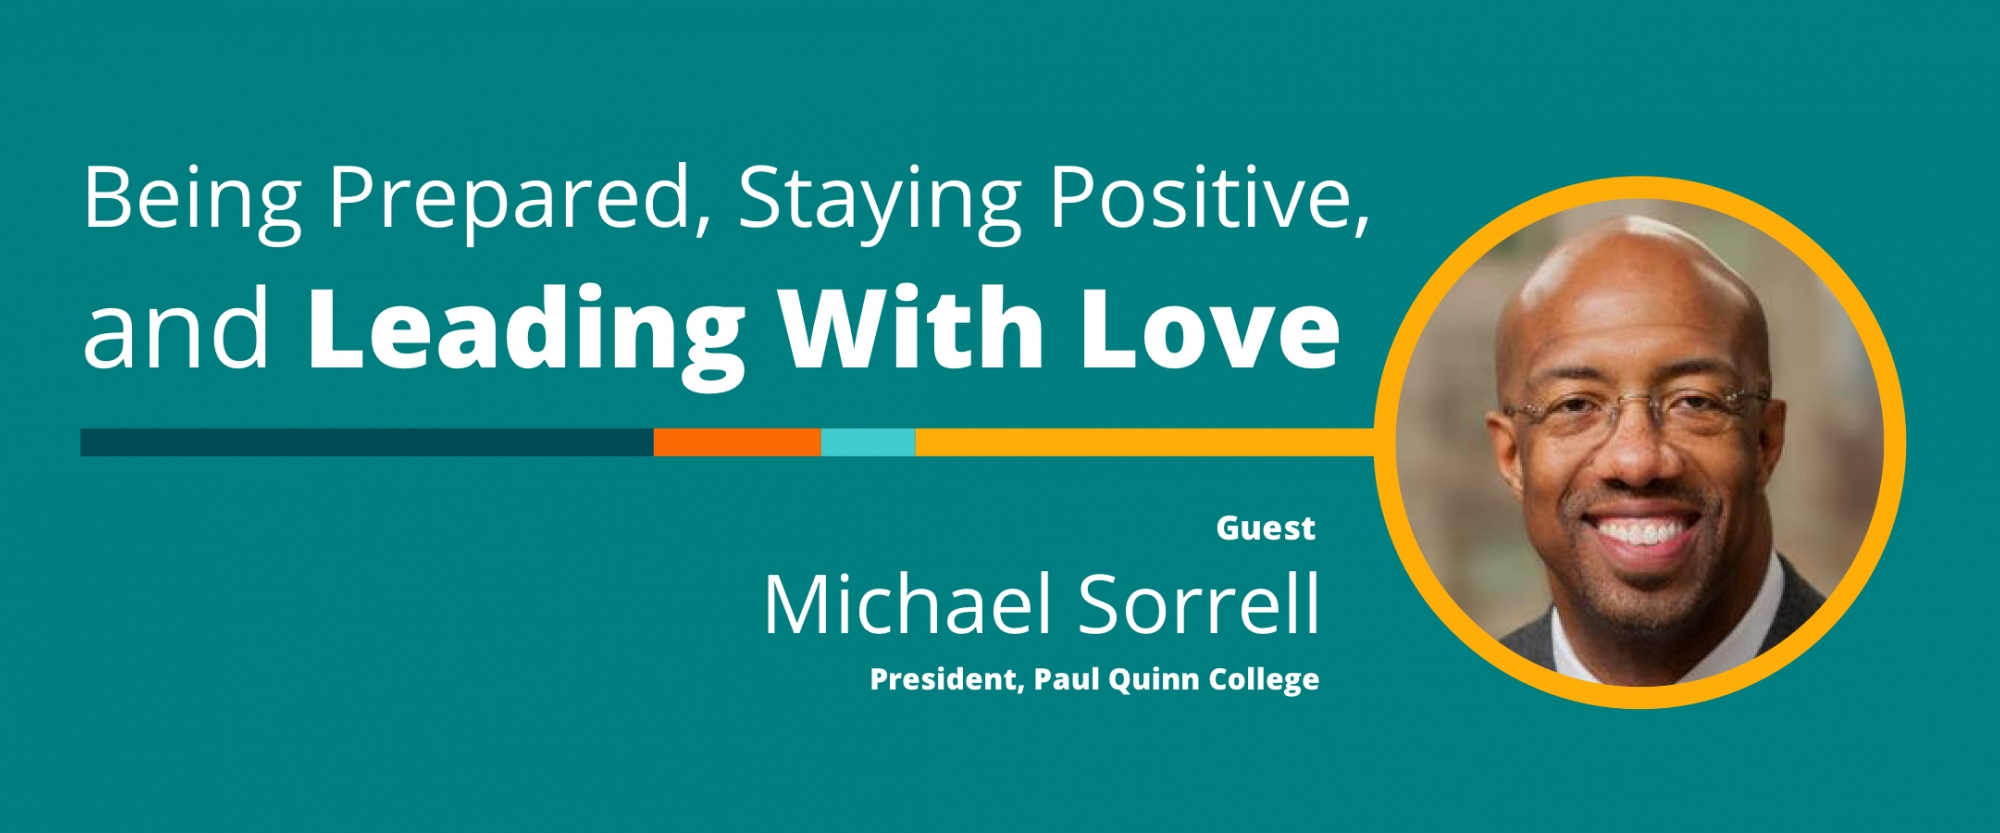 Being Prepared, Staying Positive, and Leading With Love